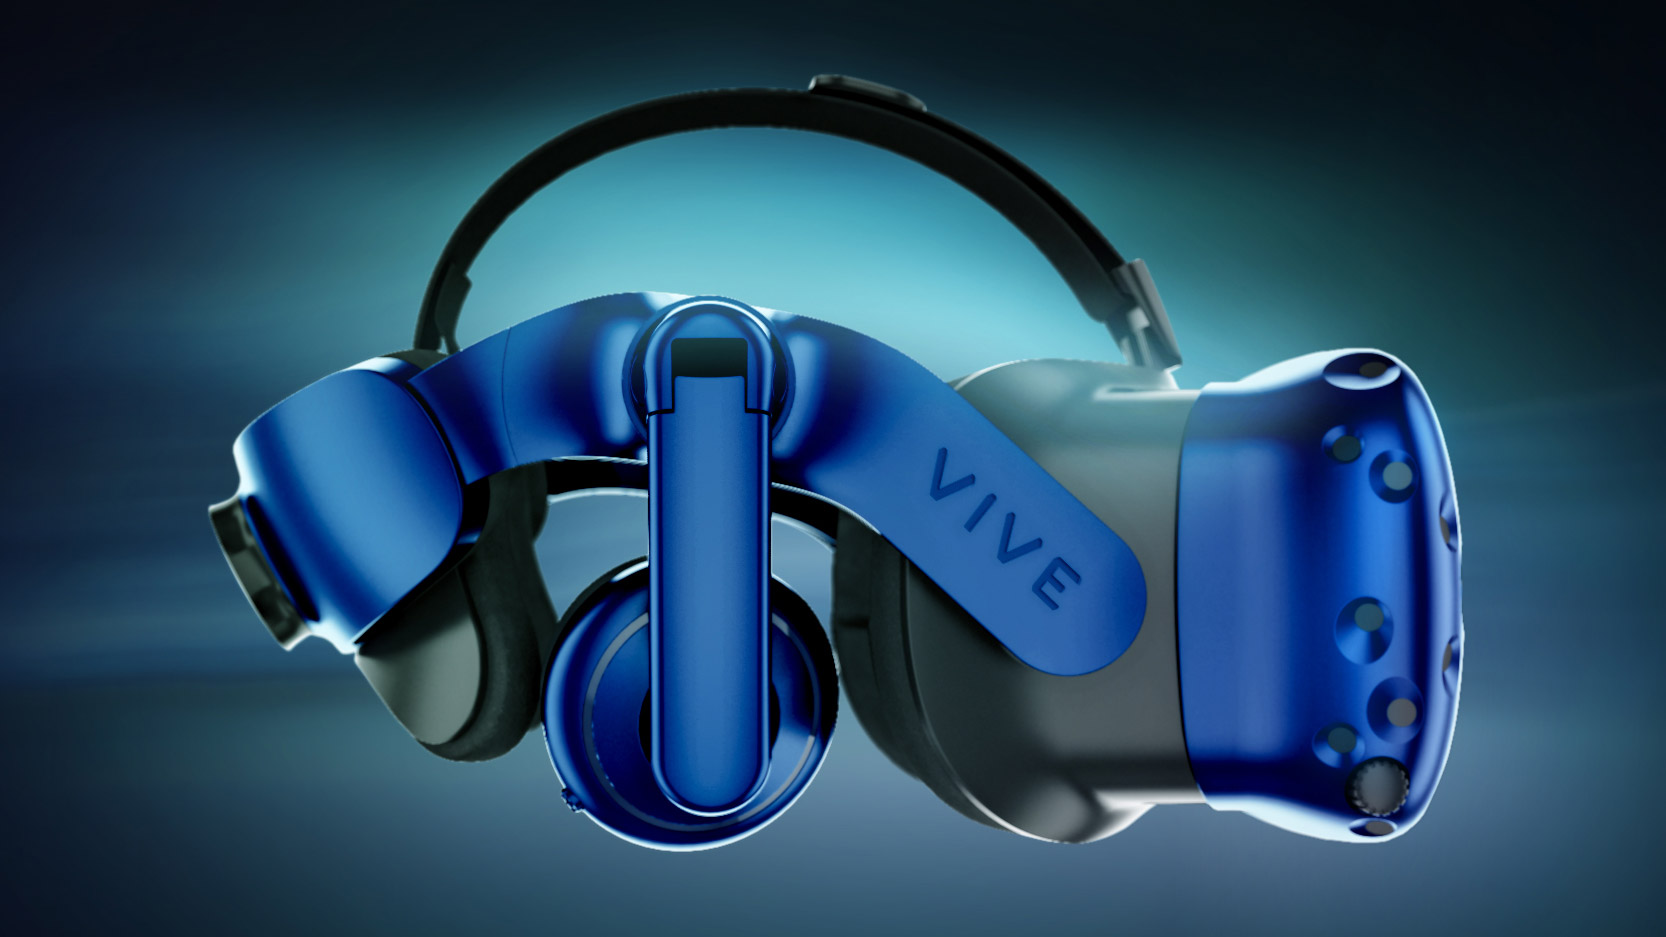 5a55c186b23 VR Enthusiasts Aren t Happy About the Price of the Vive Pro